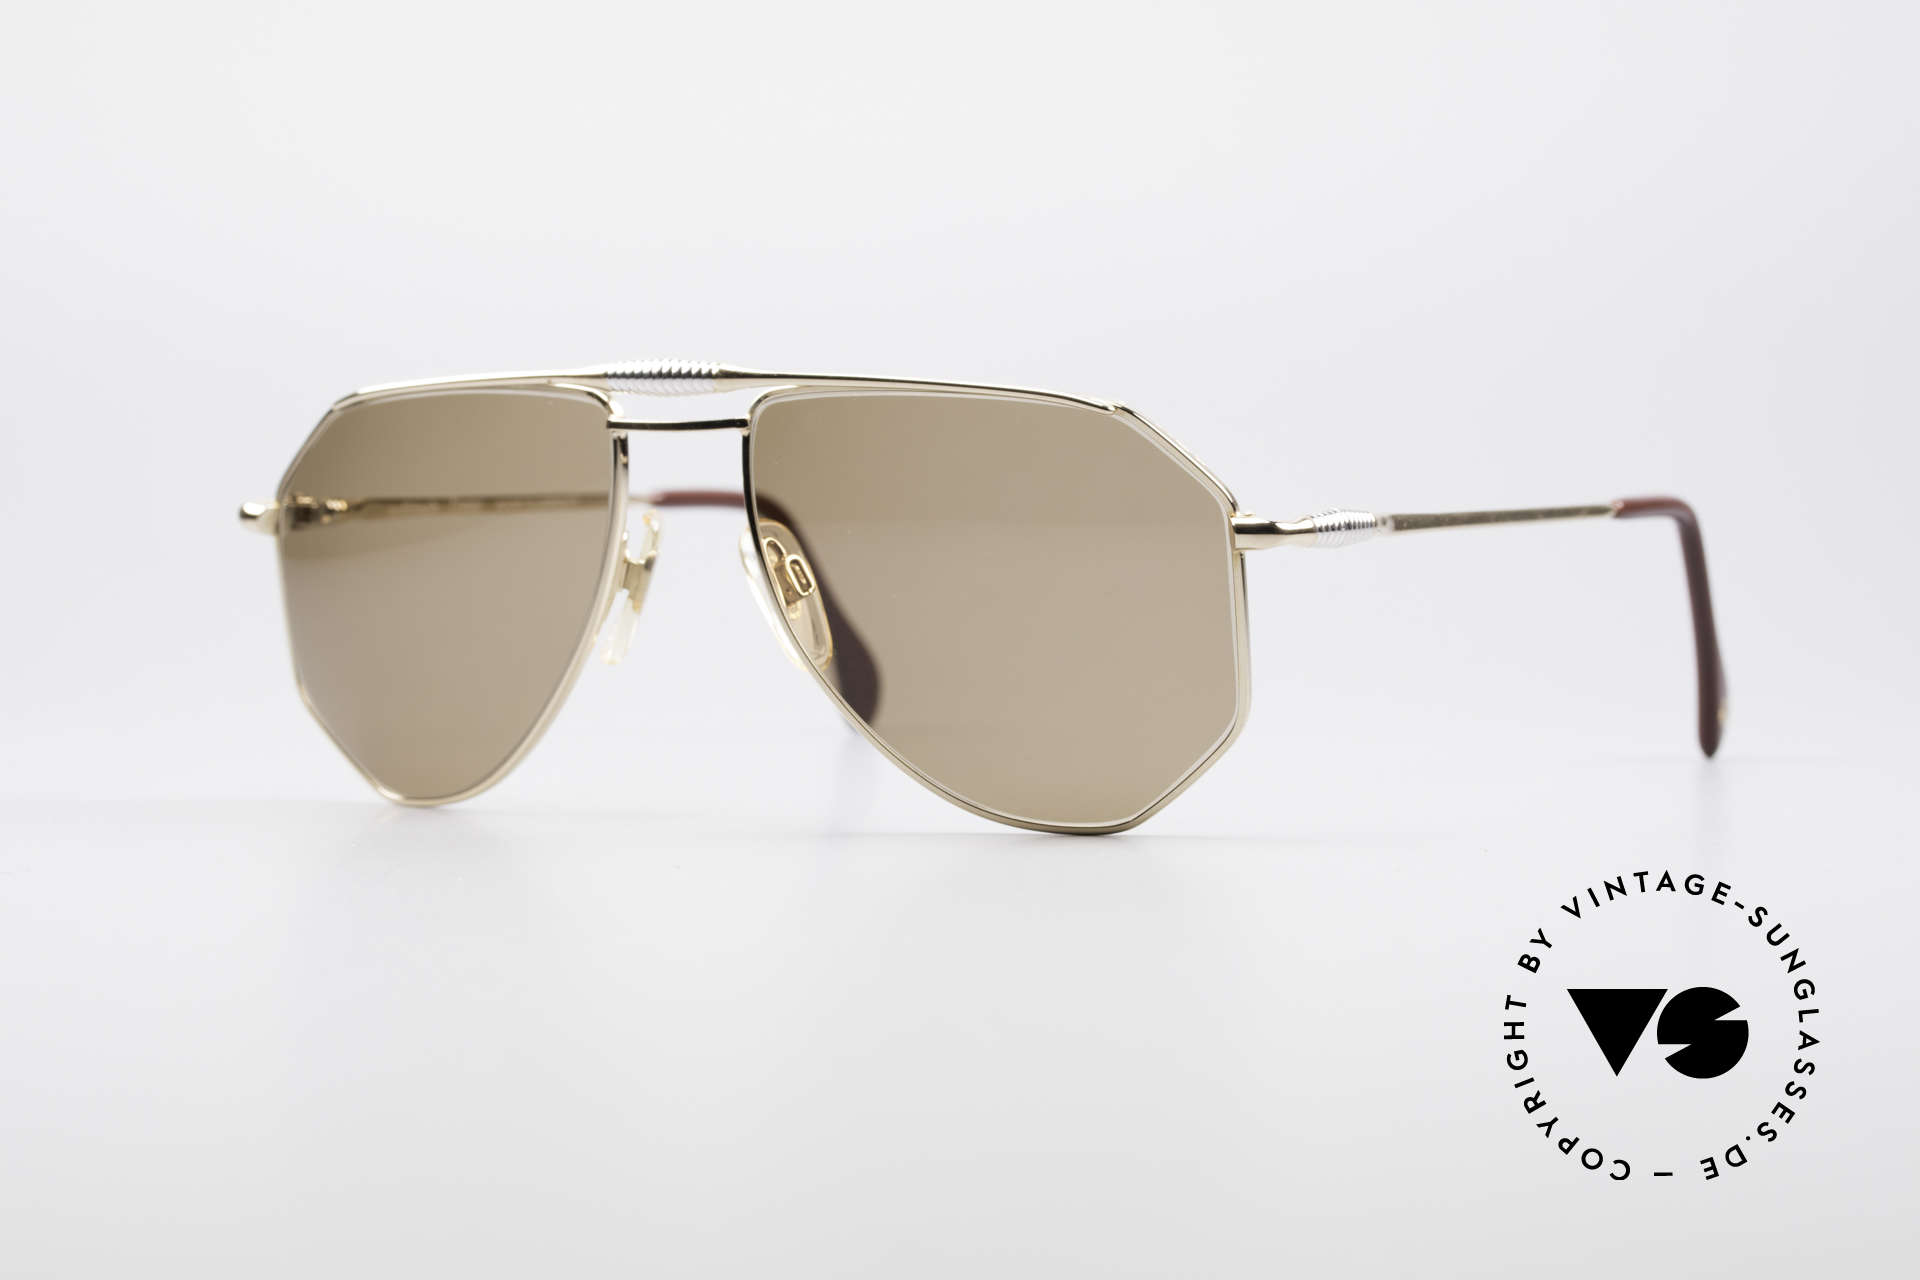 Zollitsch Cadre 120 Medium 80's Men's Sunglasses, vintage Zollitsch designer sunglasses from the late 80's, Made for Men